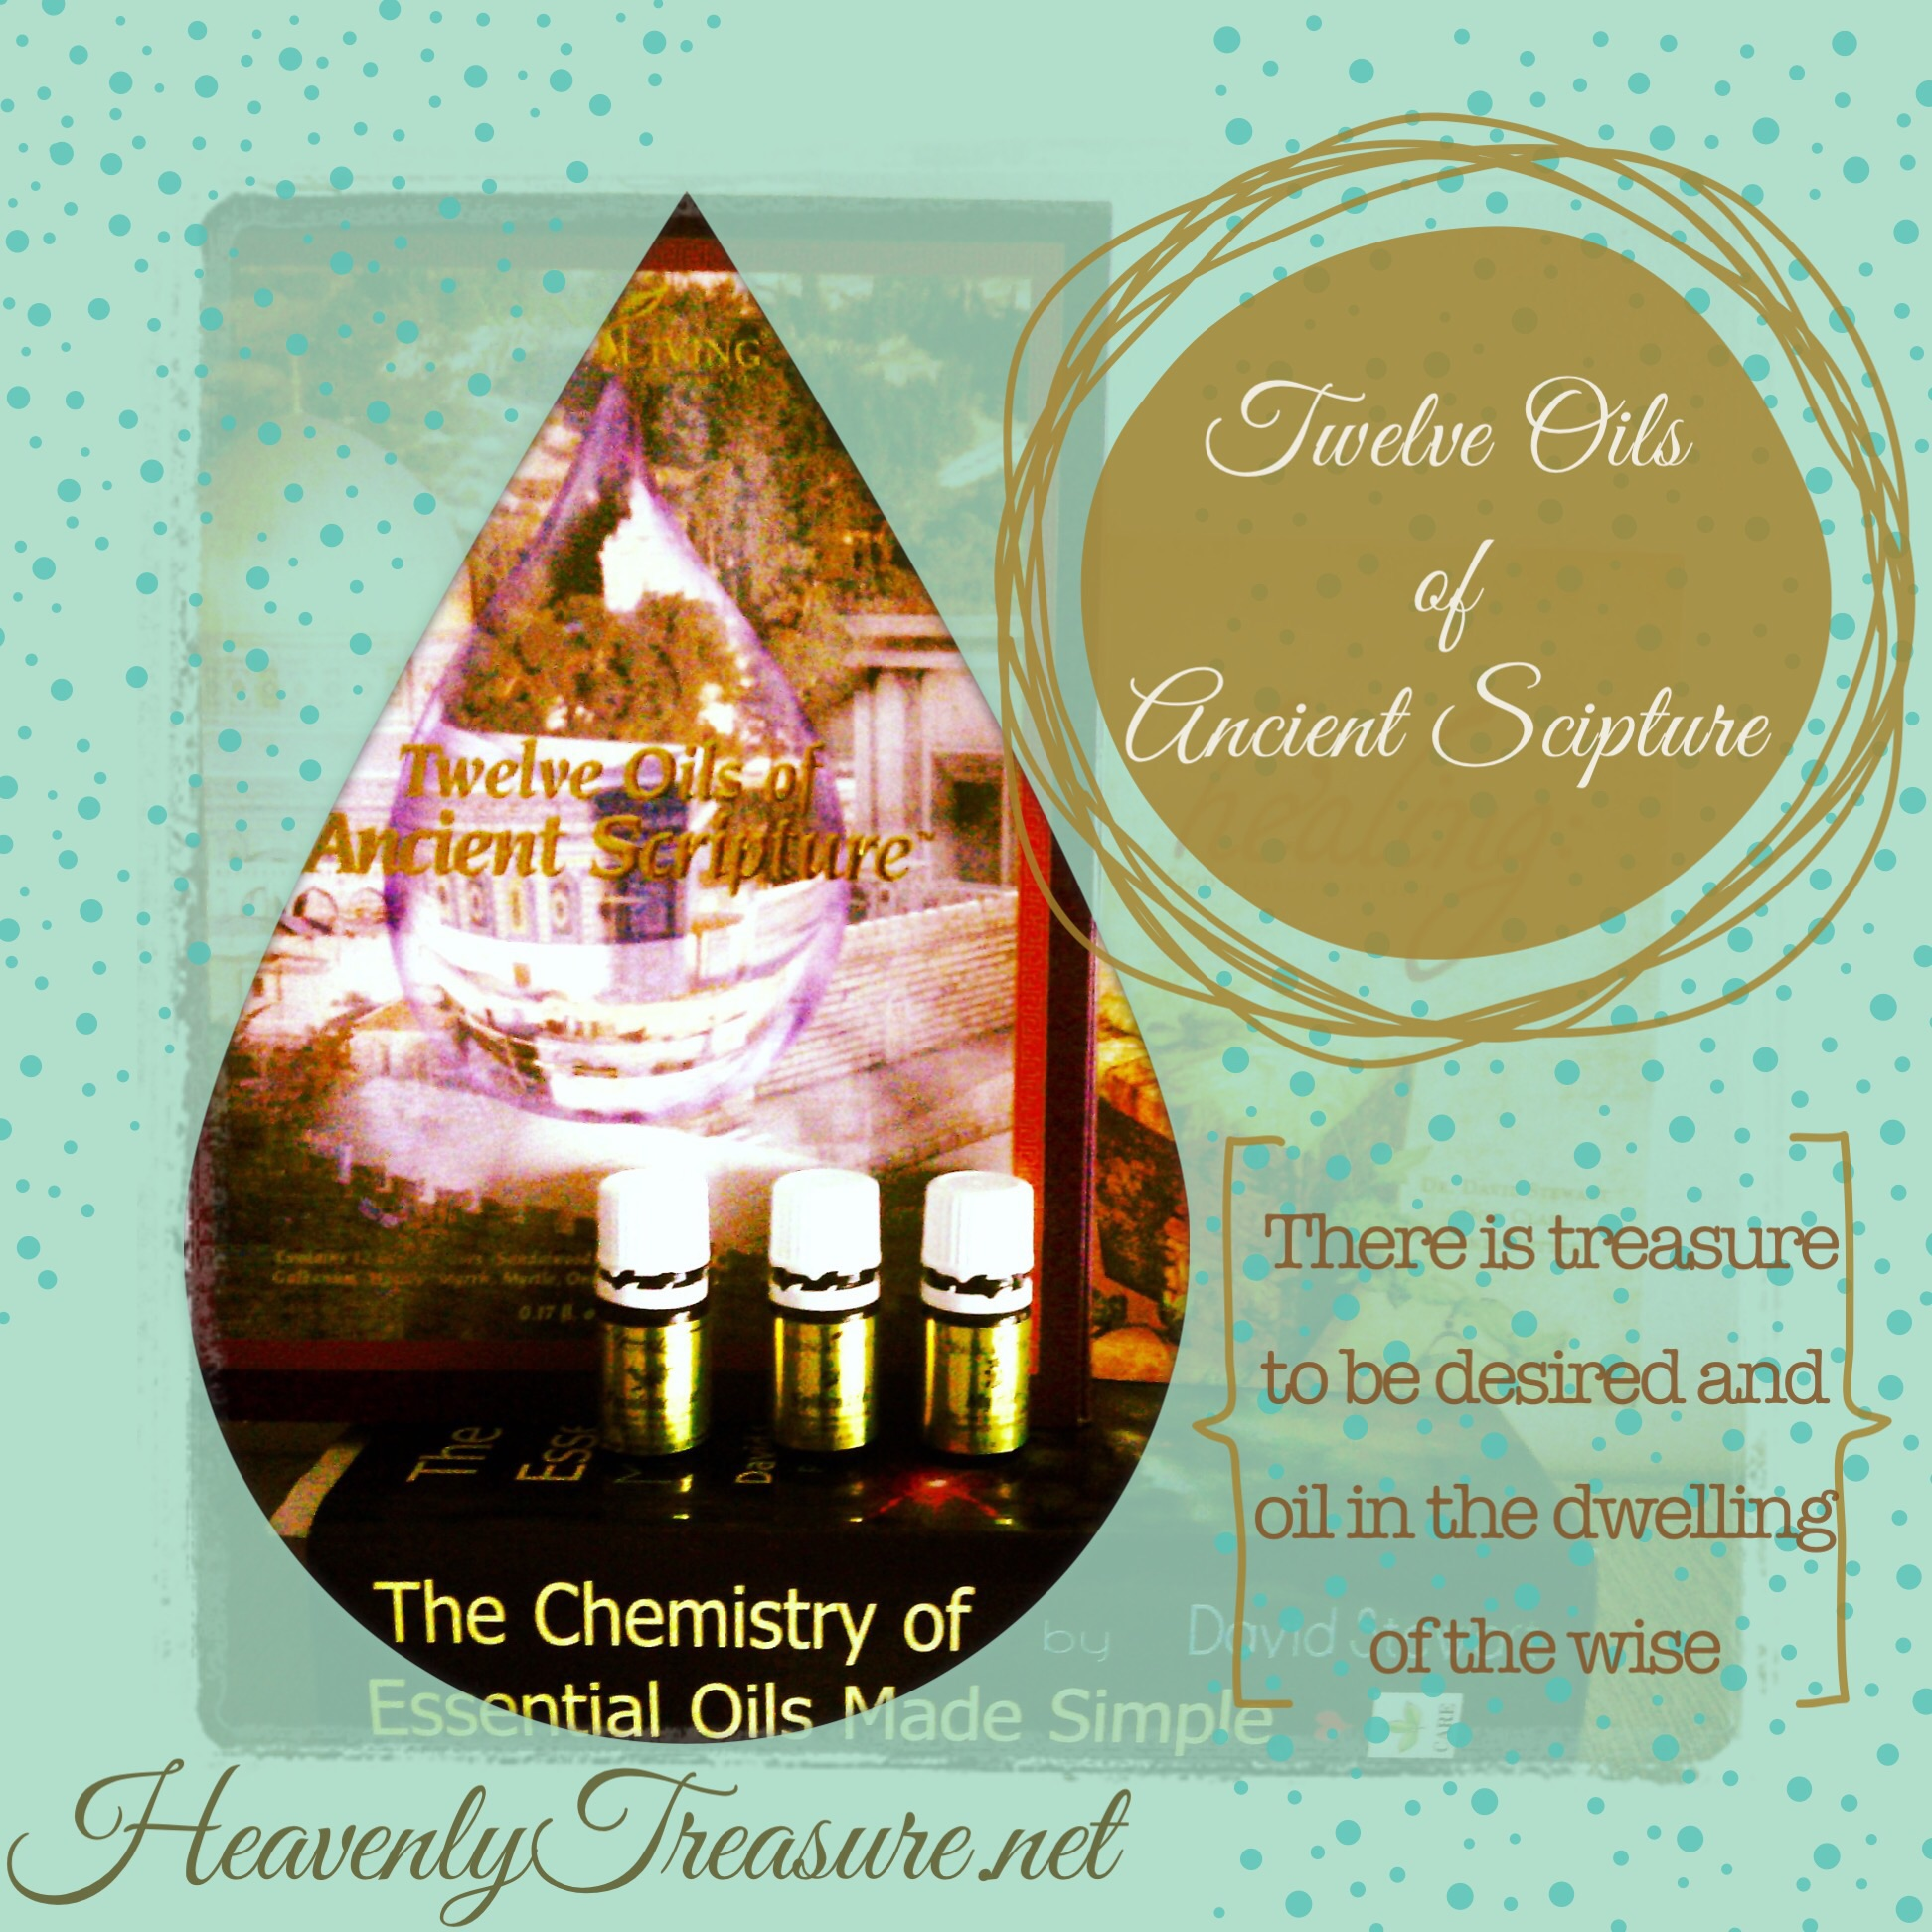 10 oils of ancient scripture verses and slide presentation of